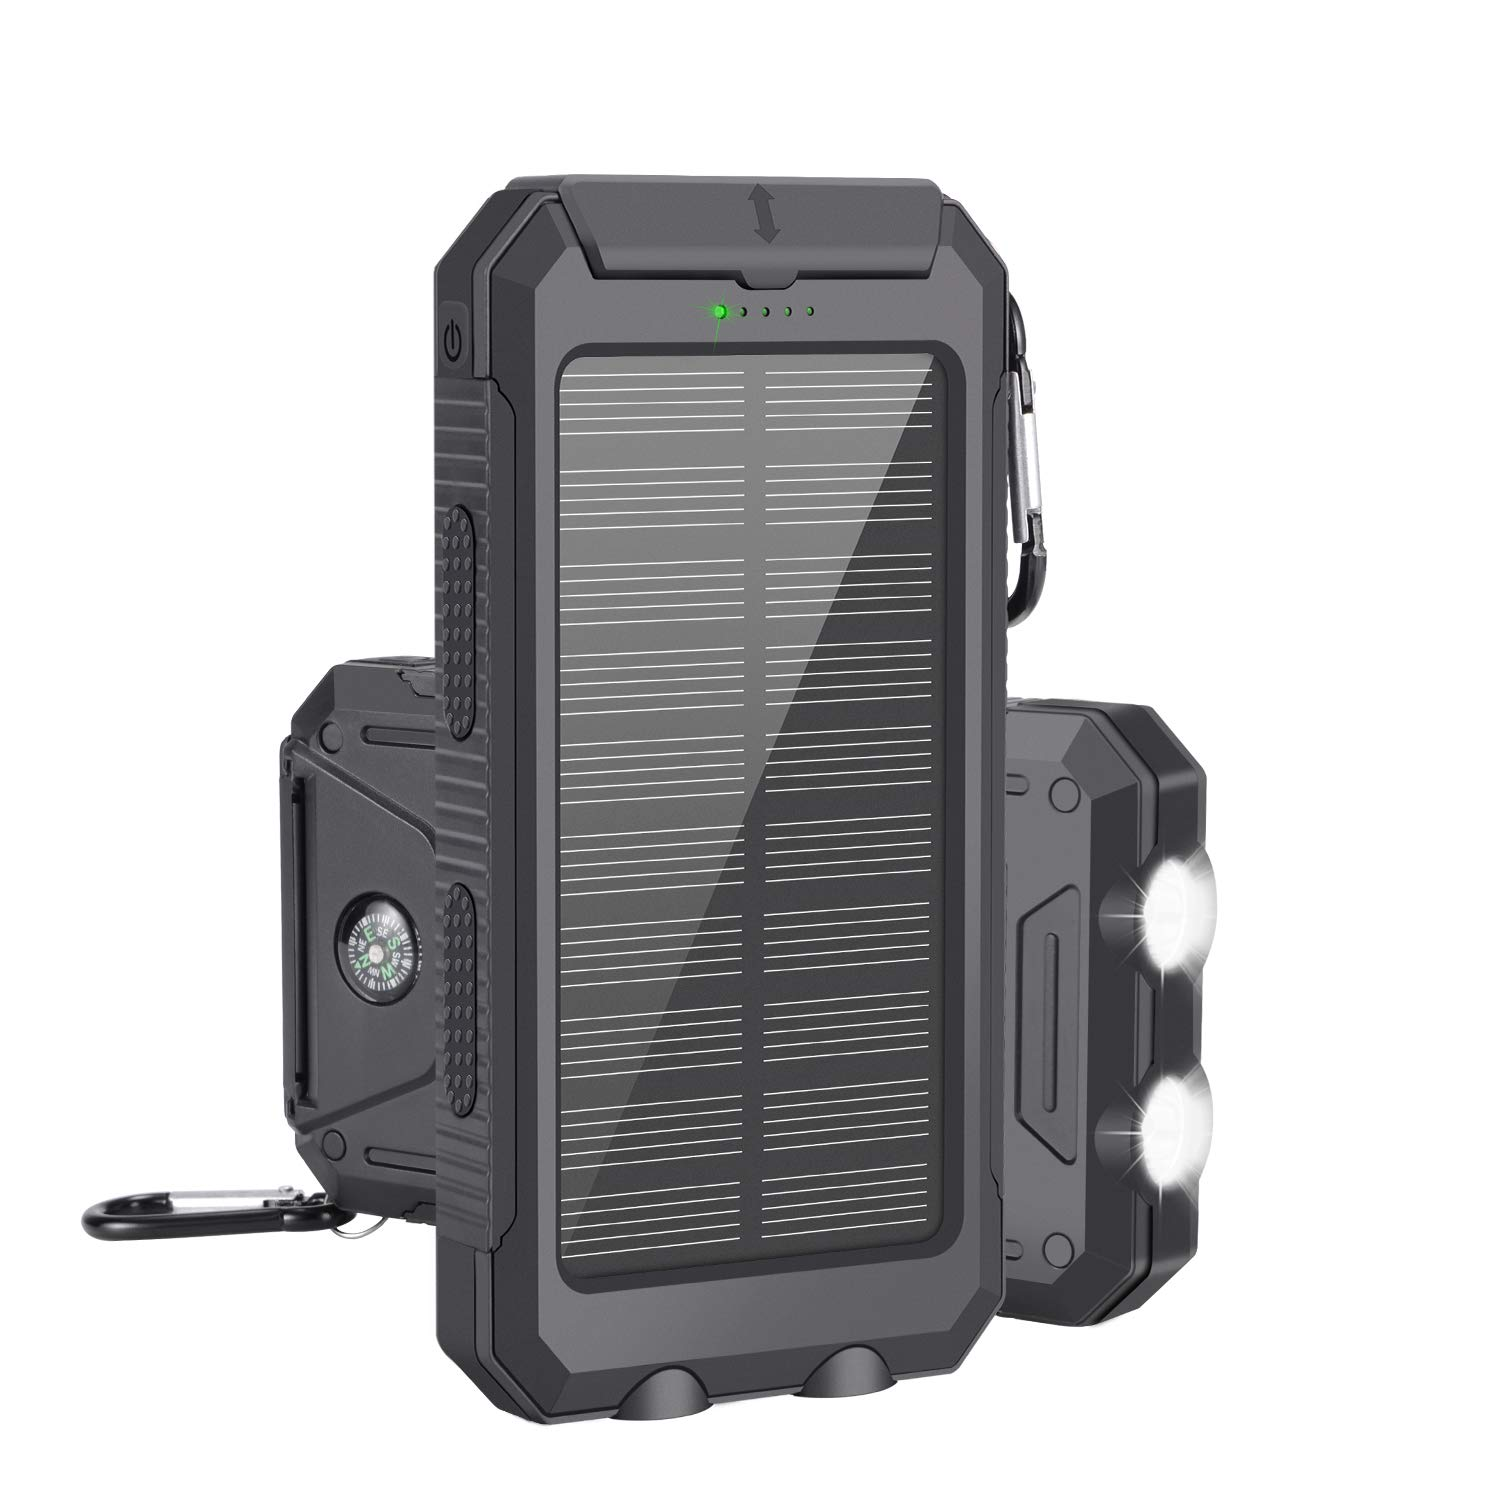 Solar Charger, 10000mAh Portable Waterproof Solar Power Bank, Dual USB External Backup Battery Pack with 2 Flashlights for Travelling, Hiking, Cellphone Charging by AUSEINS